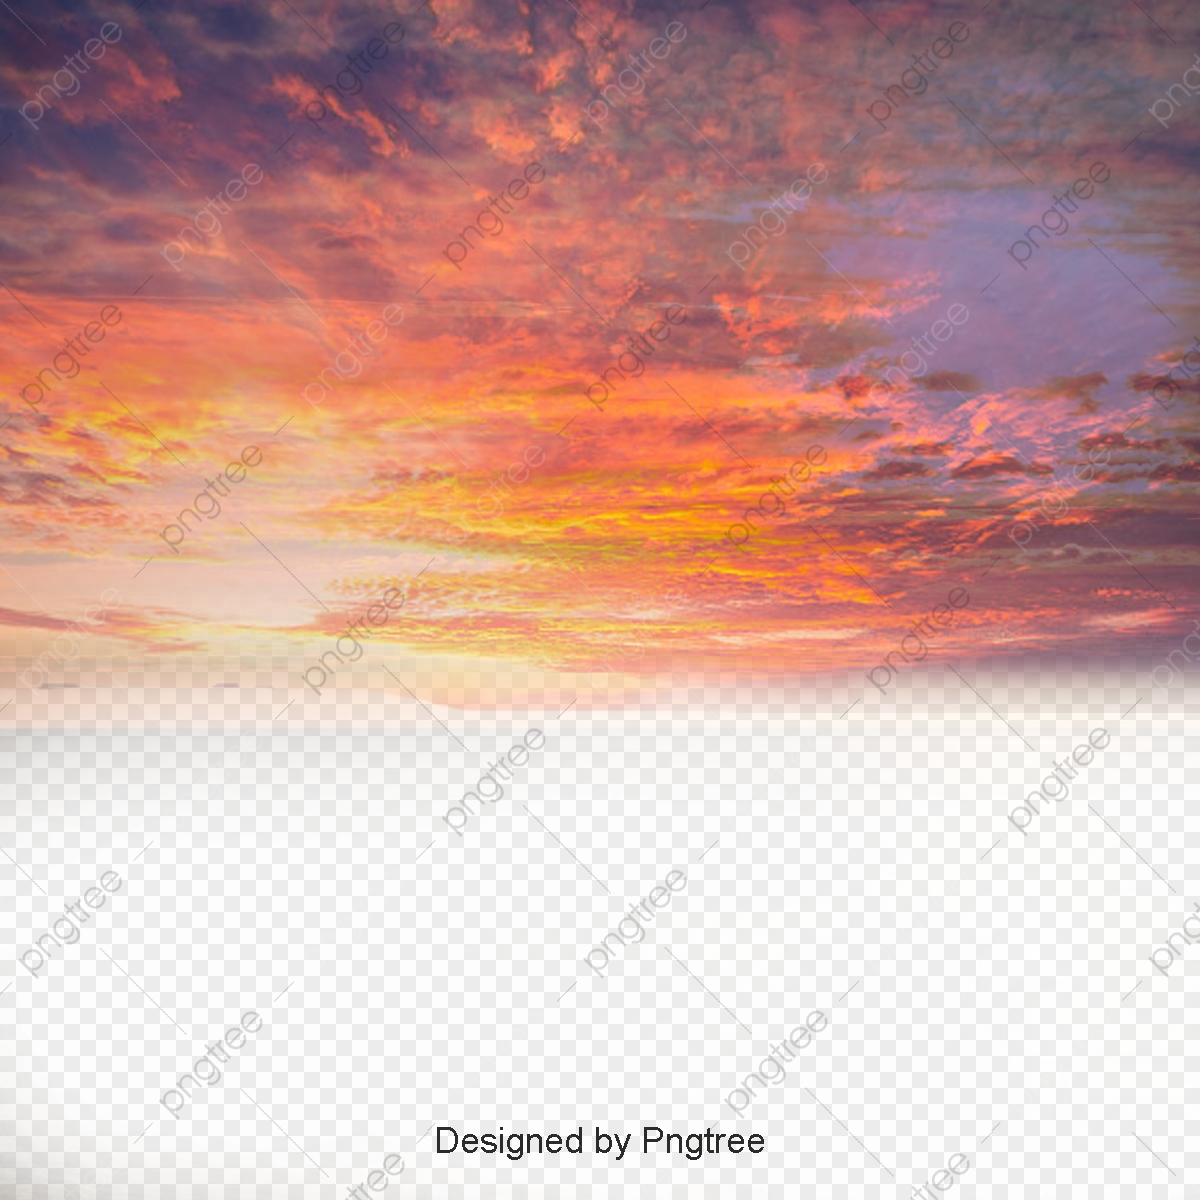 sunset png images vector and psd files free download on pngtree https pngtree com freepng beautiful fire 3350904 html